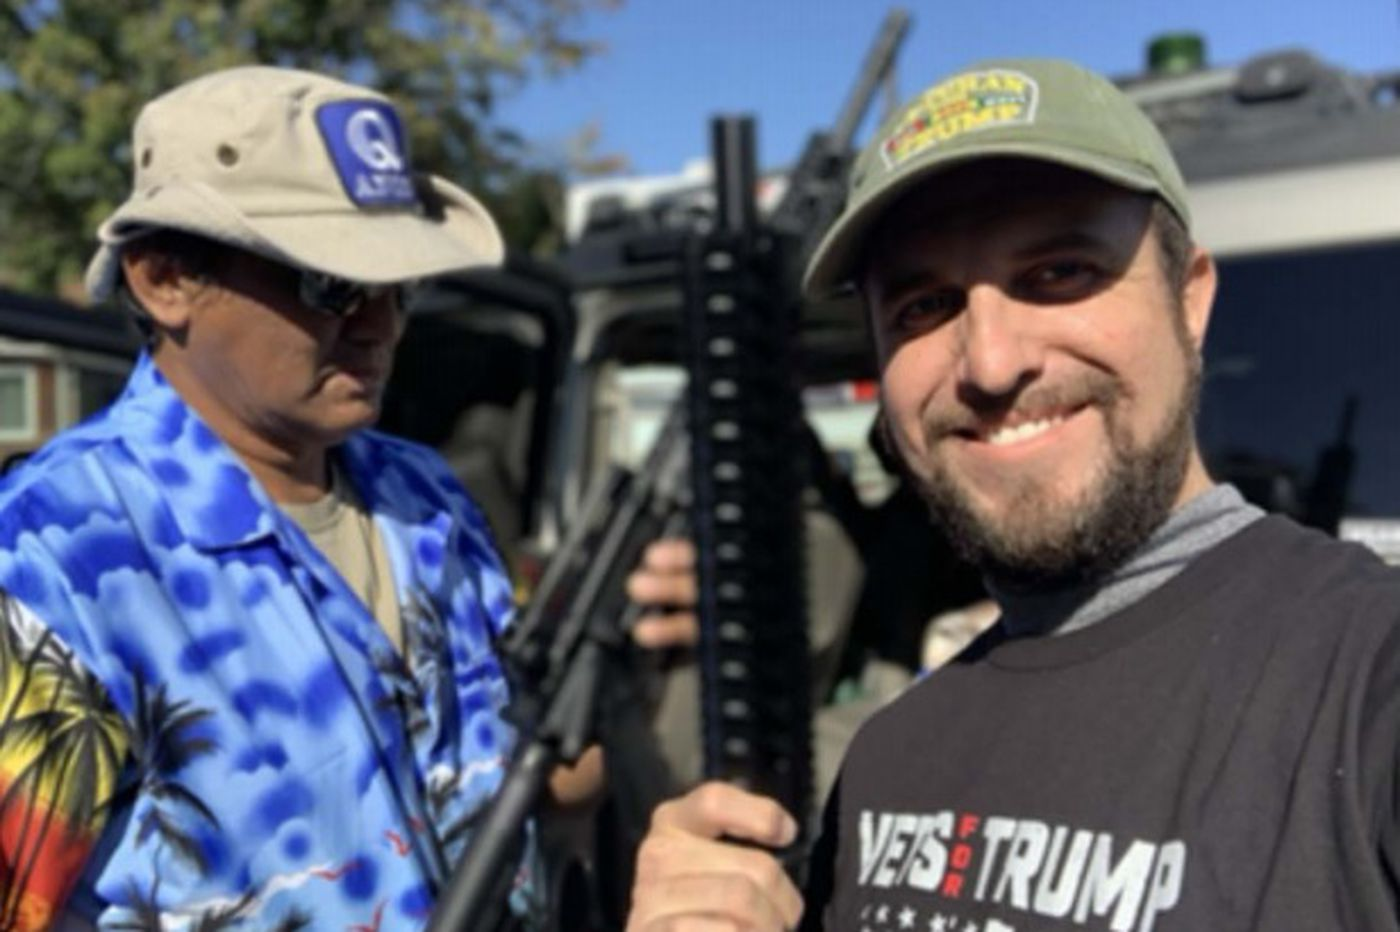 Prosecutors cite Capitol siege in bid to revoke bail for Vets for Trump founder caught in Philly with Hummer filled with guns